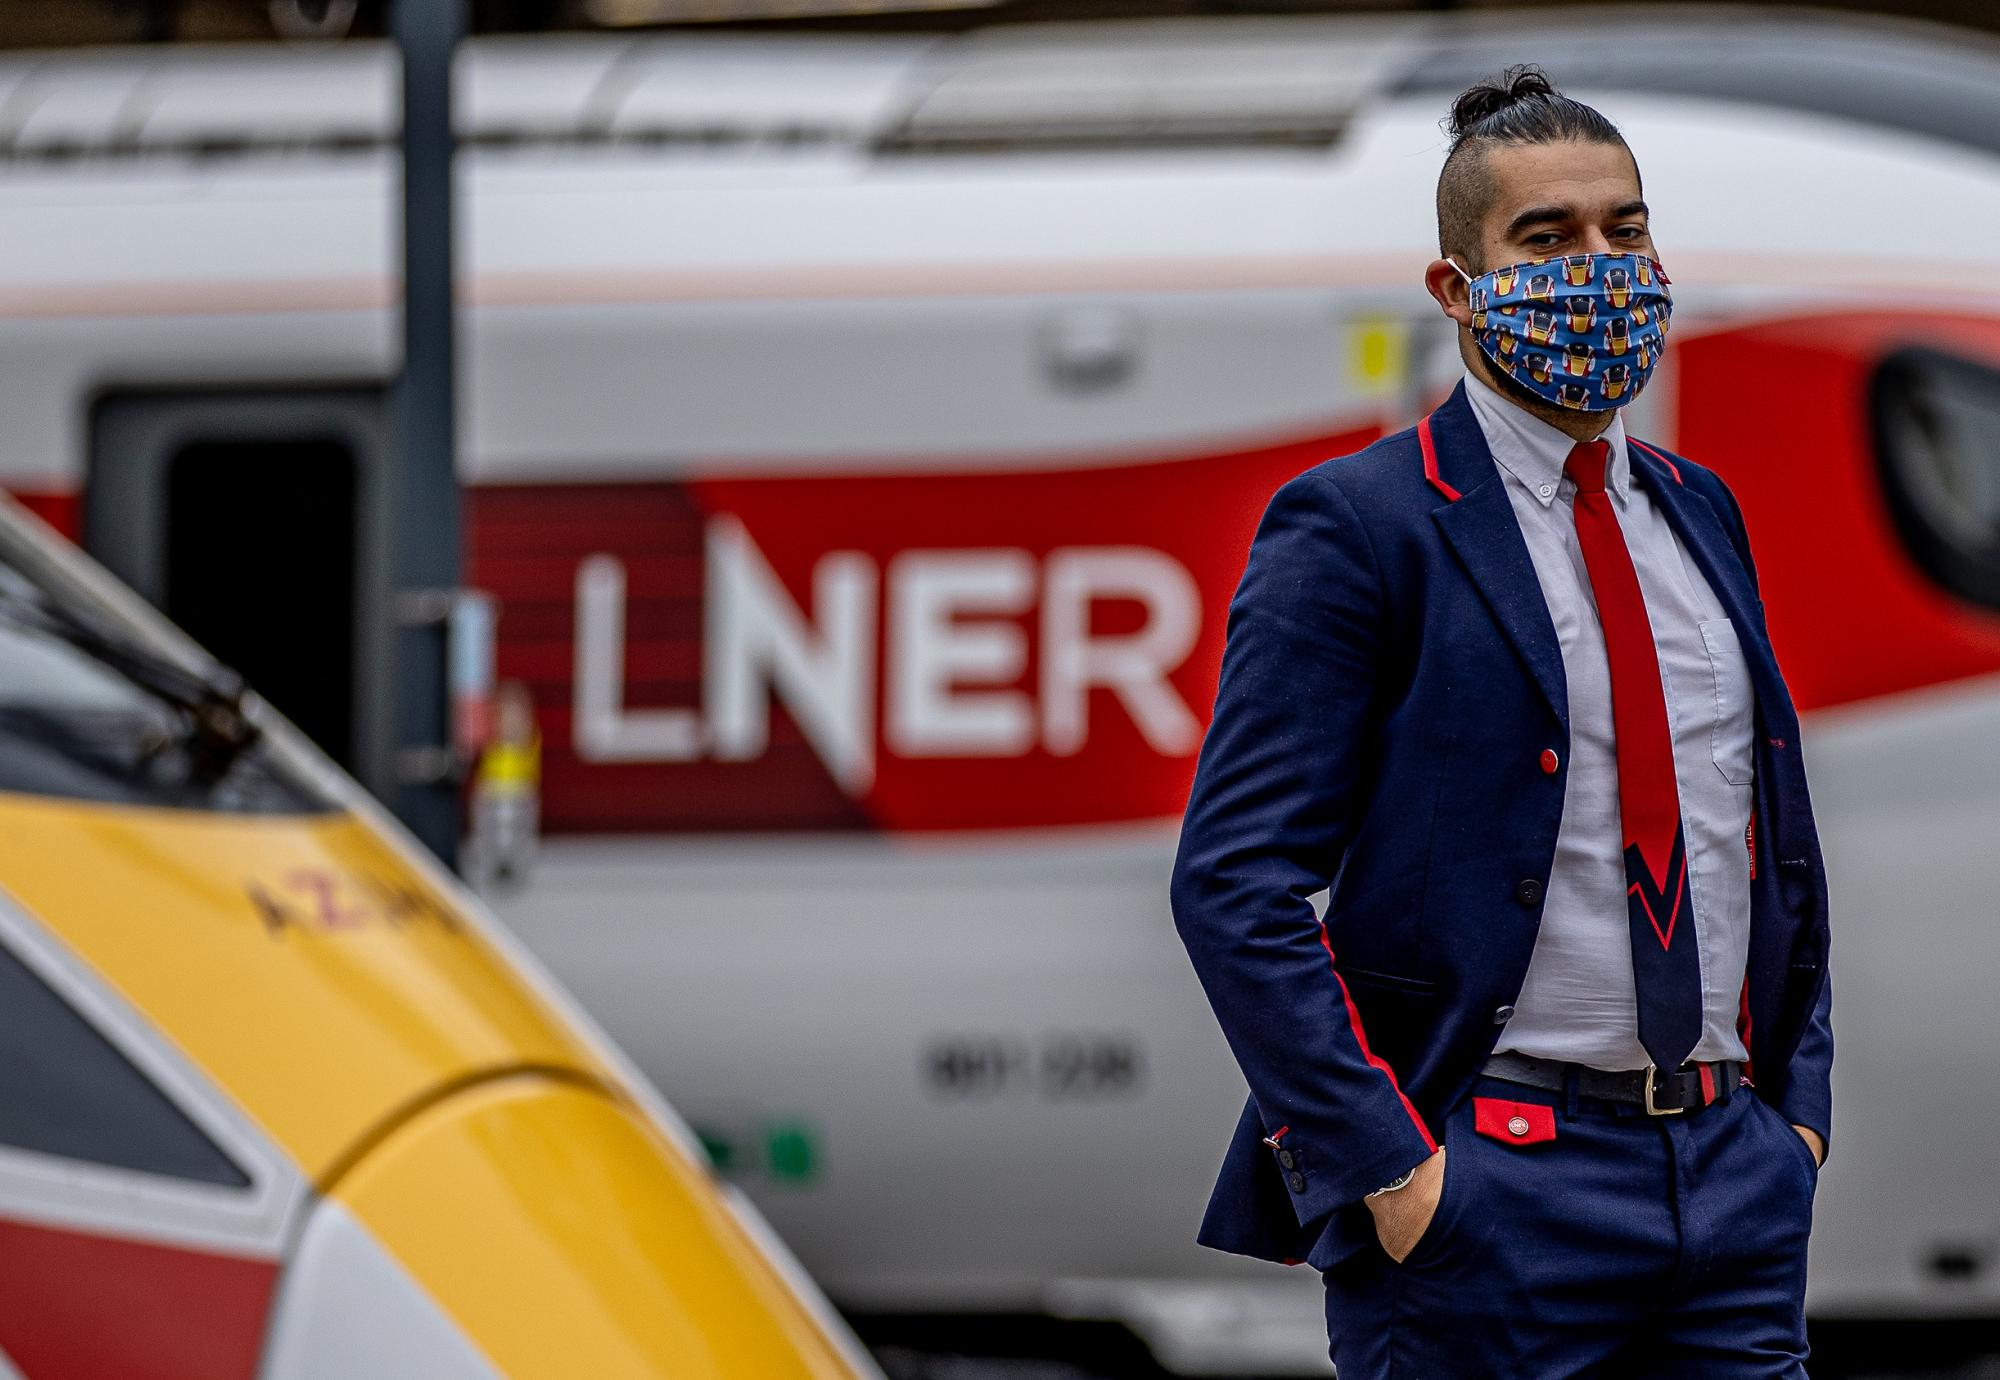 LNER Station Support Assistant Emrah Mehmet wearing the LNER Azuma Mask at London King's Cross Station.